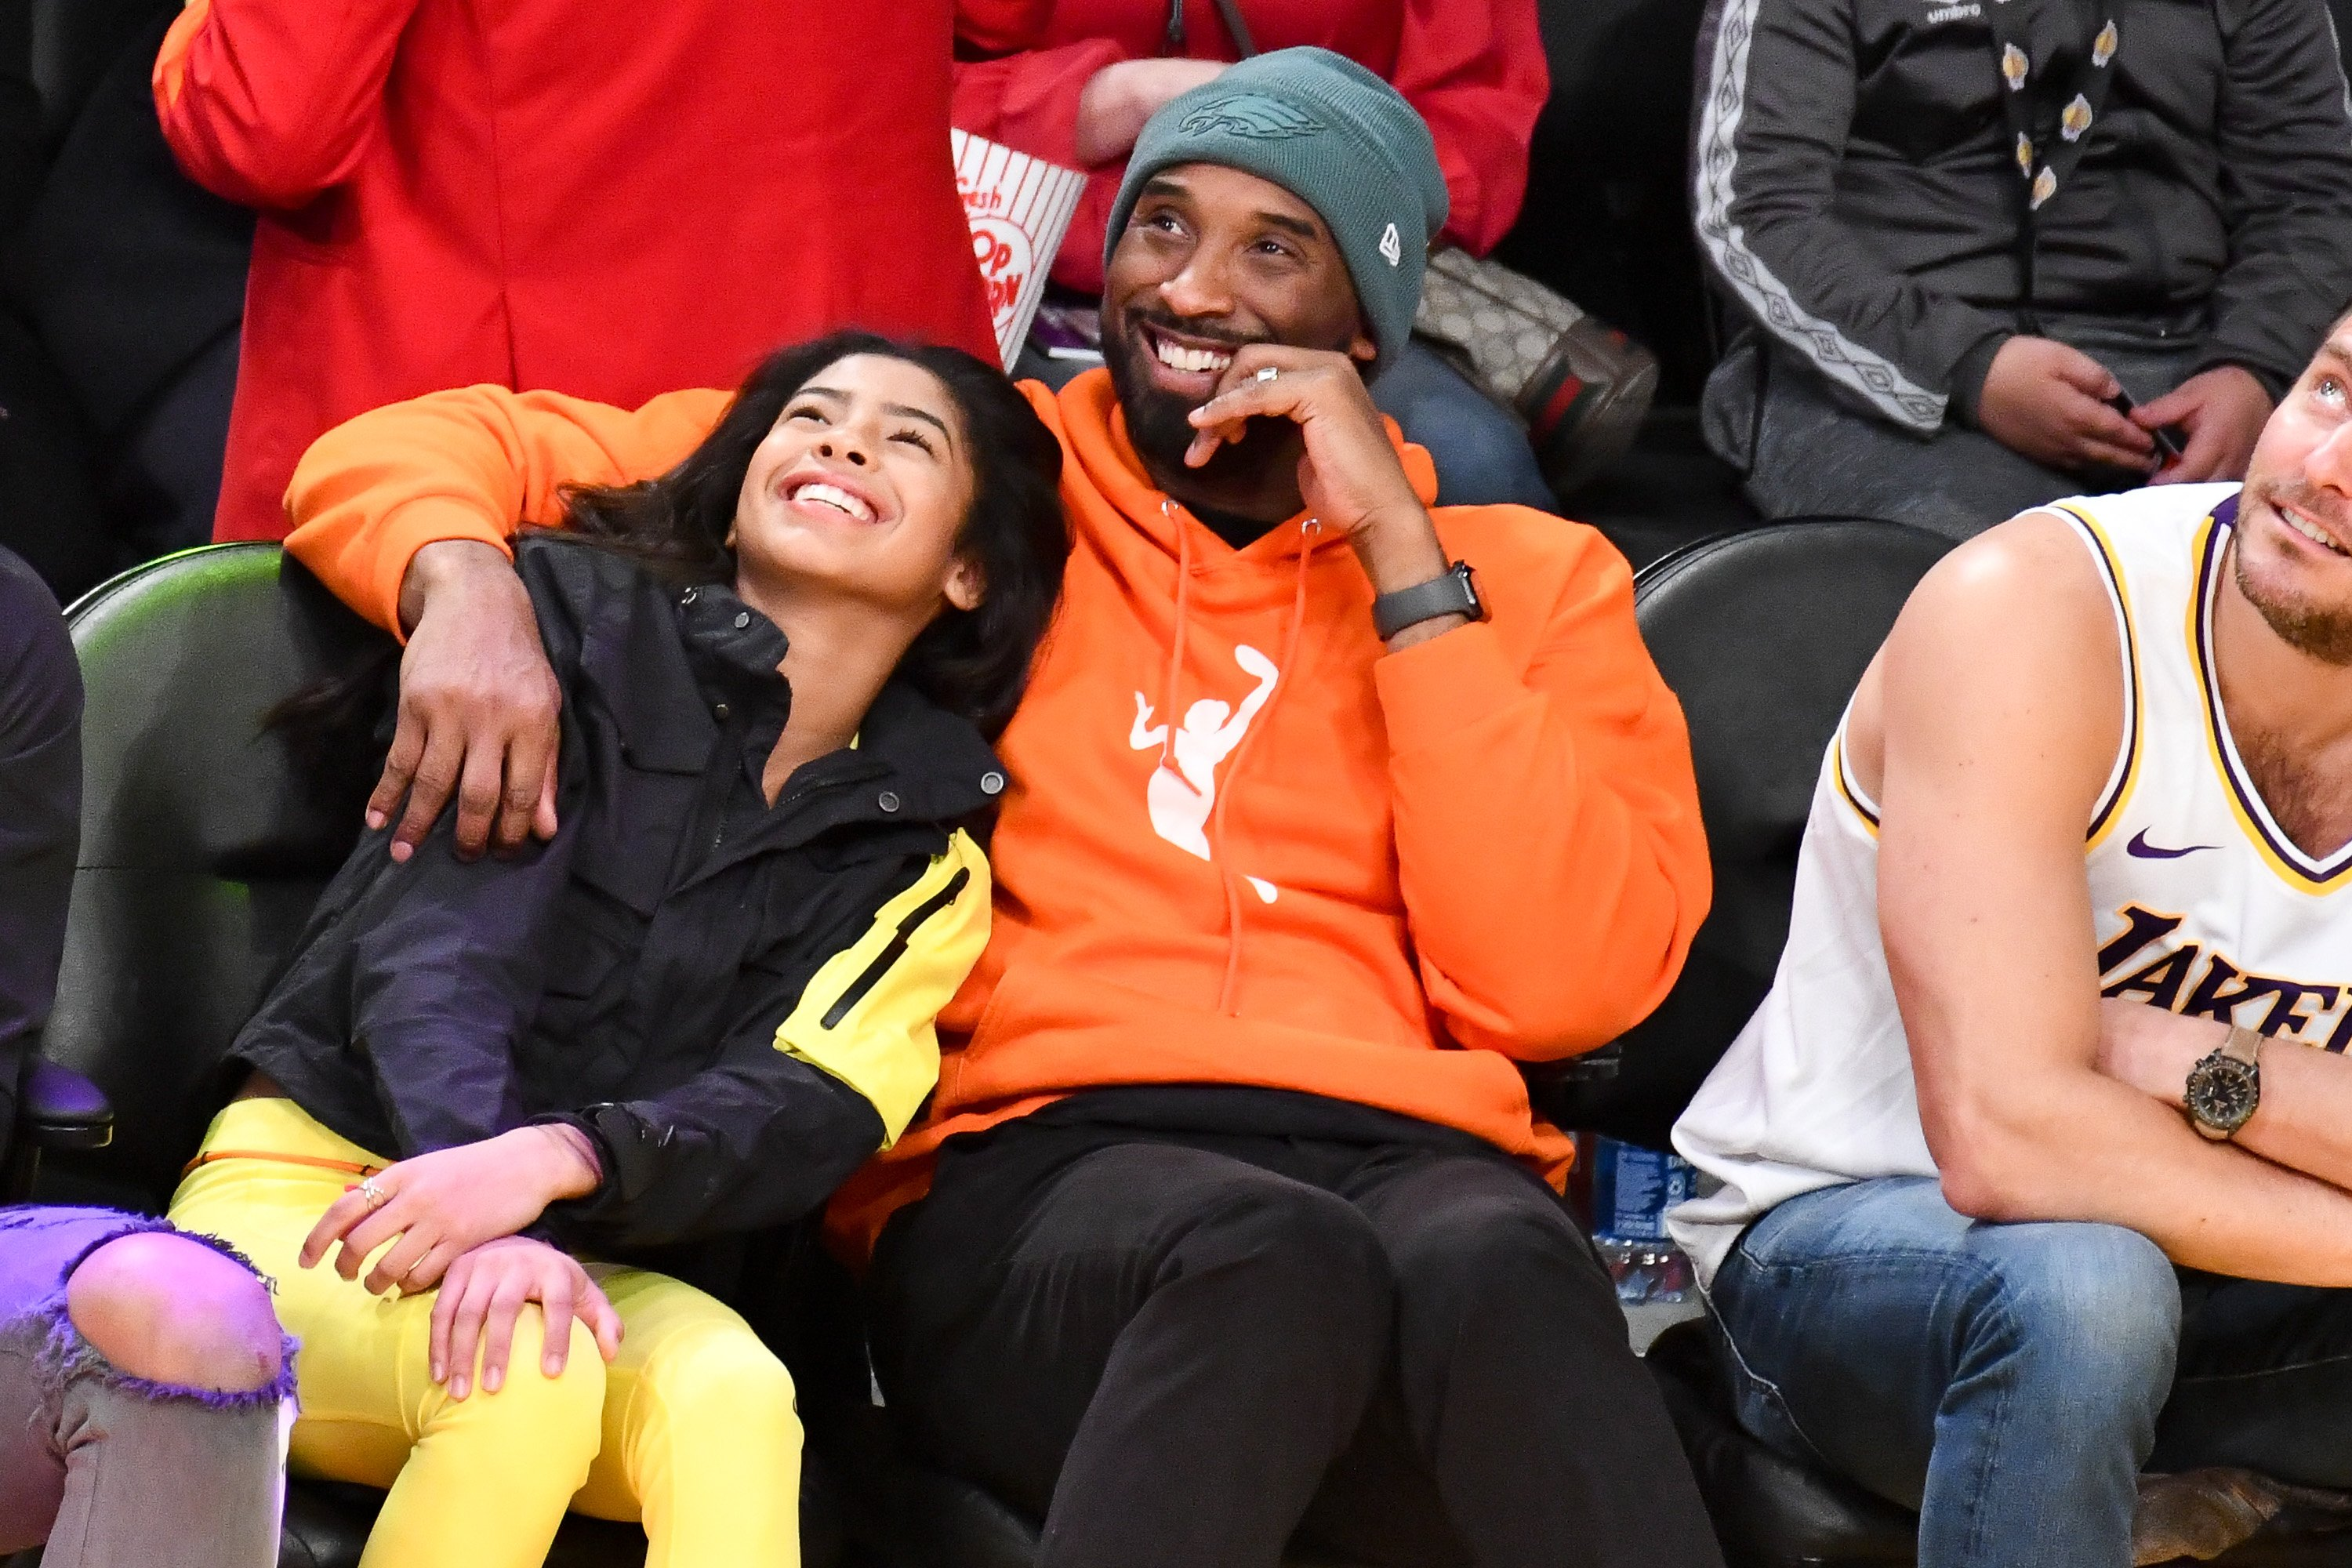 Kobe Bryant and his daughter, Gianna, pictured enjoying a basketball game between the Los Angeles Lakers and the Dallas Mavericks, 2019, California. | Photo: Getty Images.